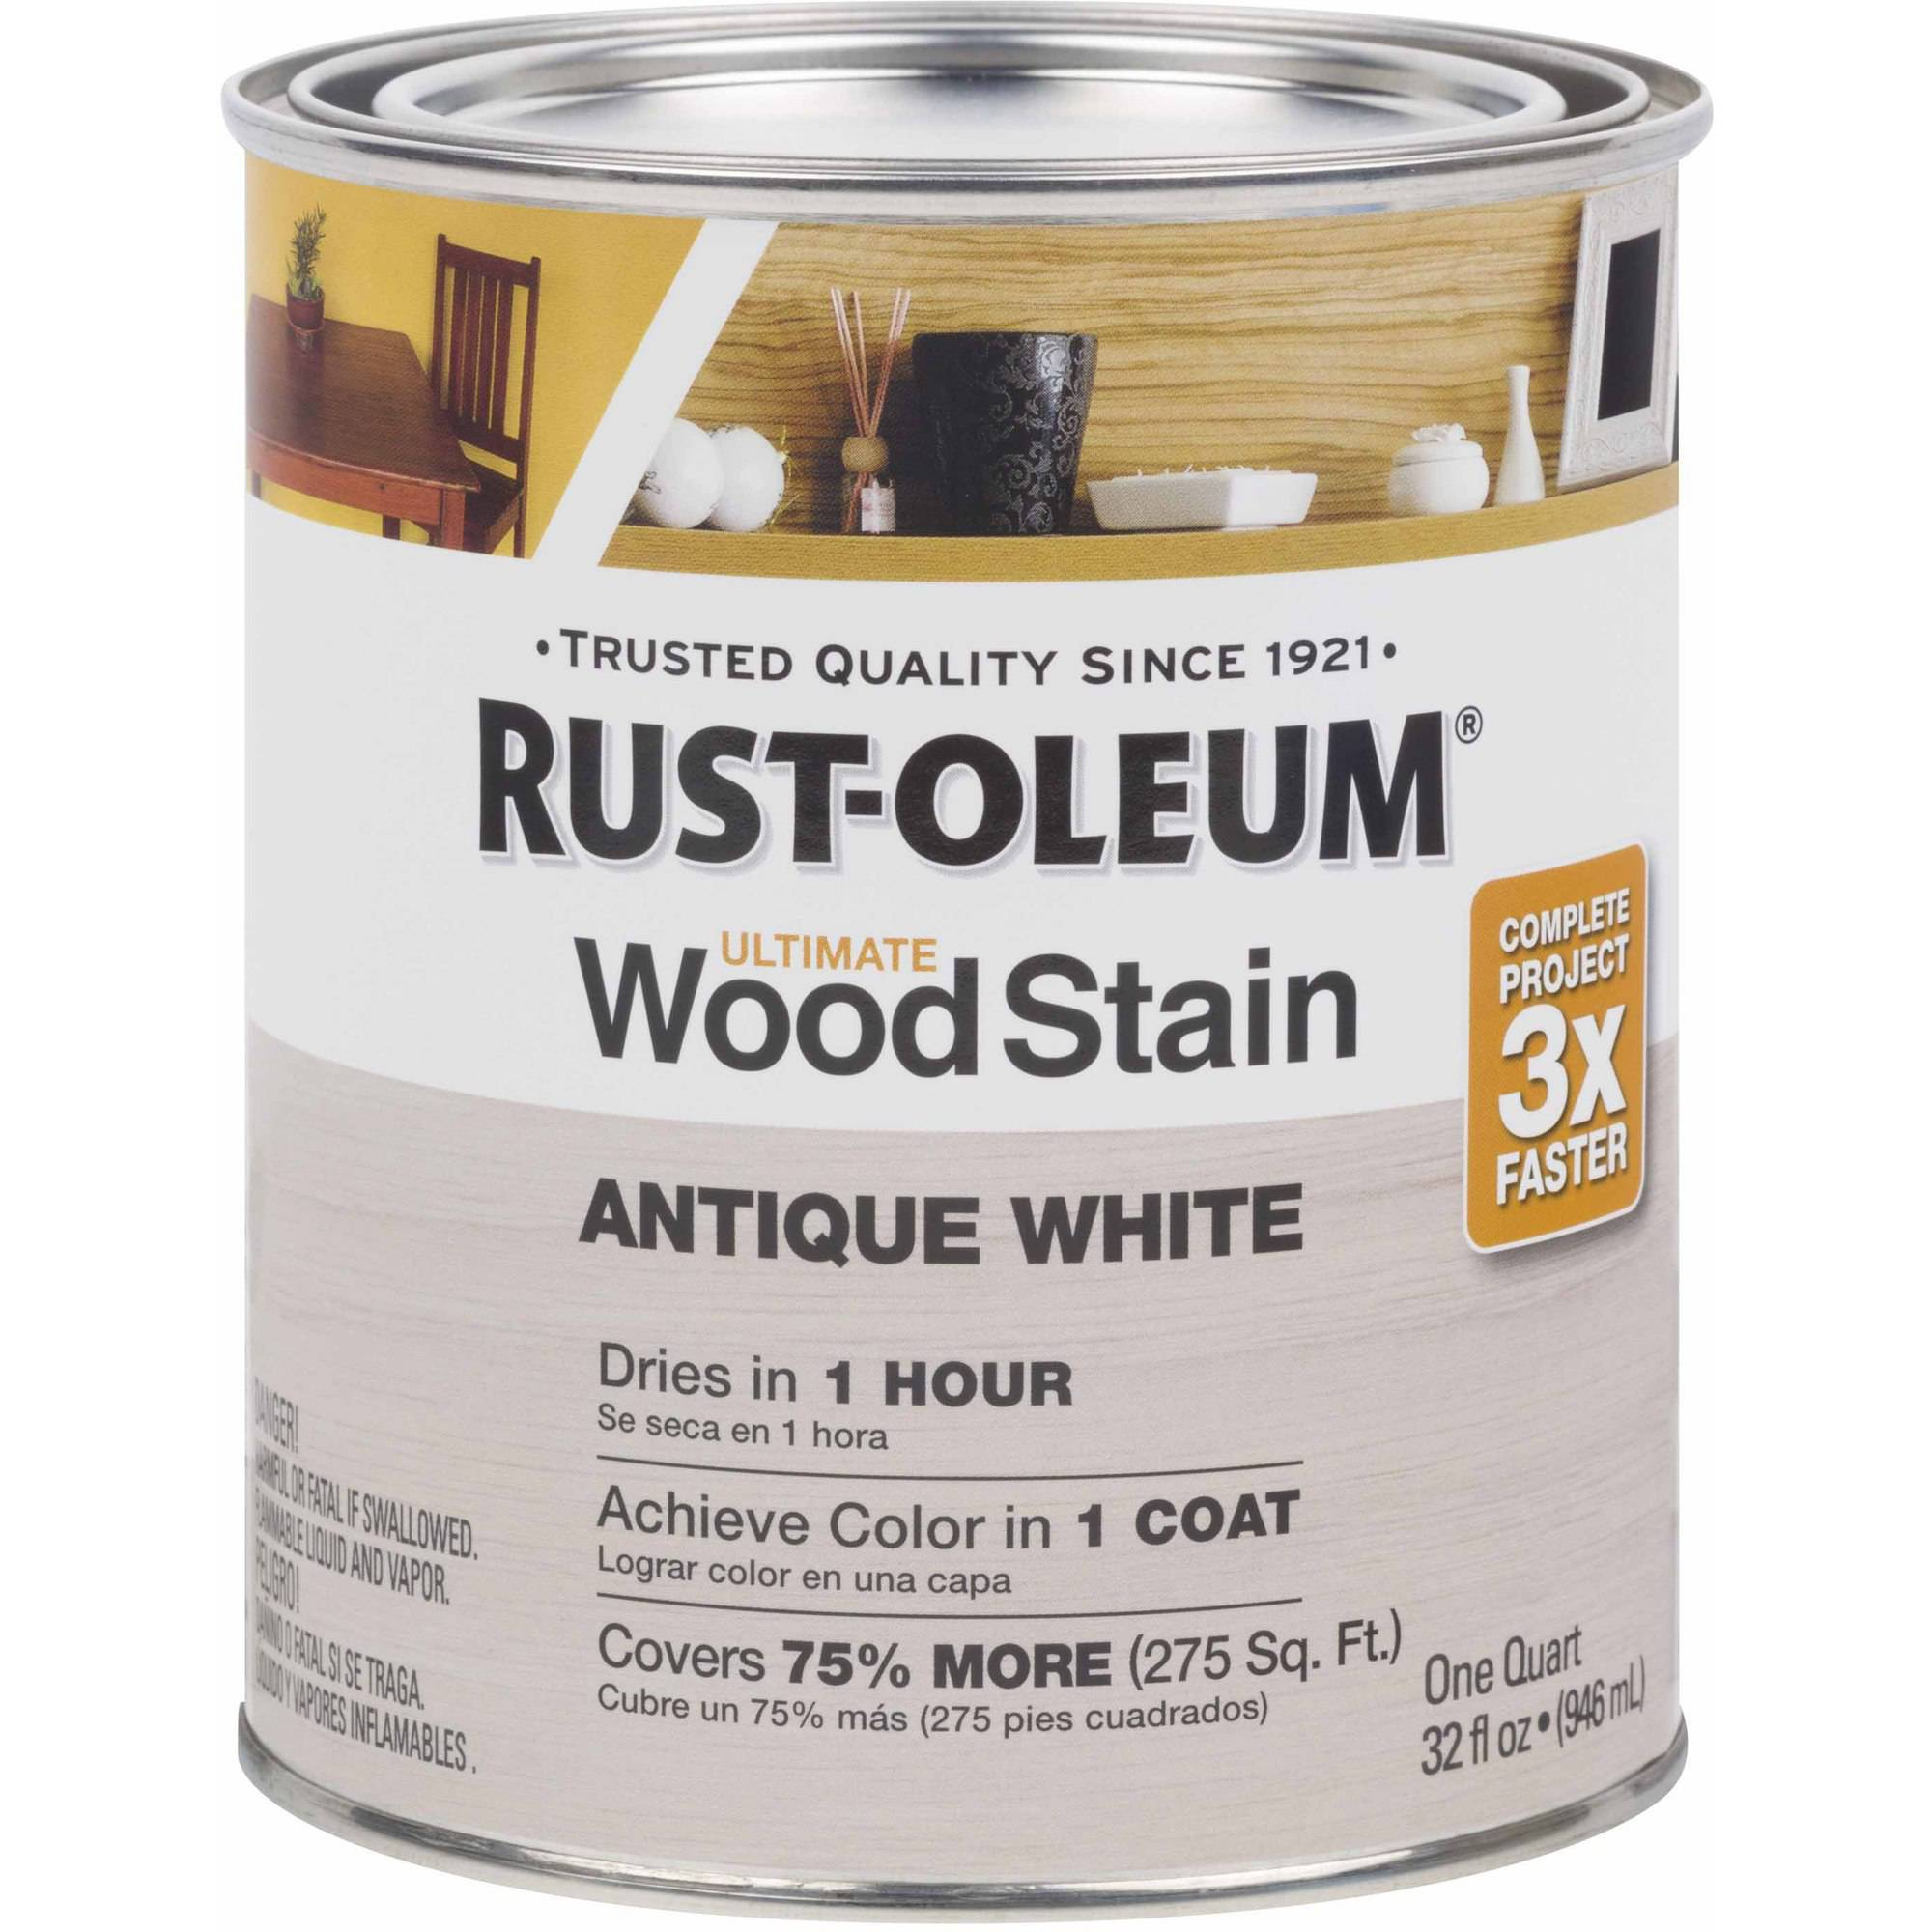 Rust-Oleum Ultimate Wood Stain Quart, Antique White